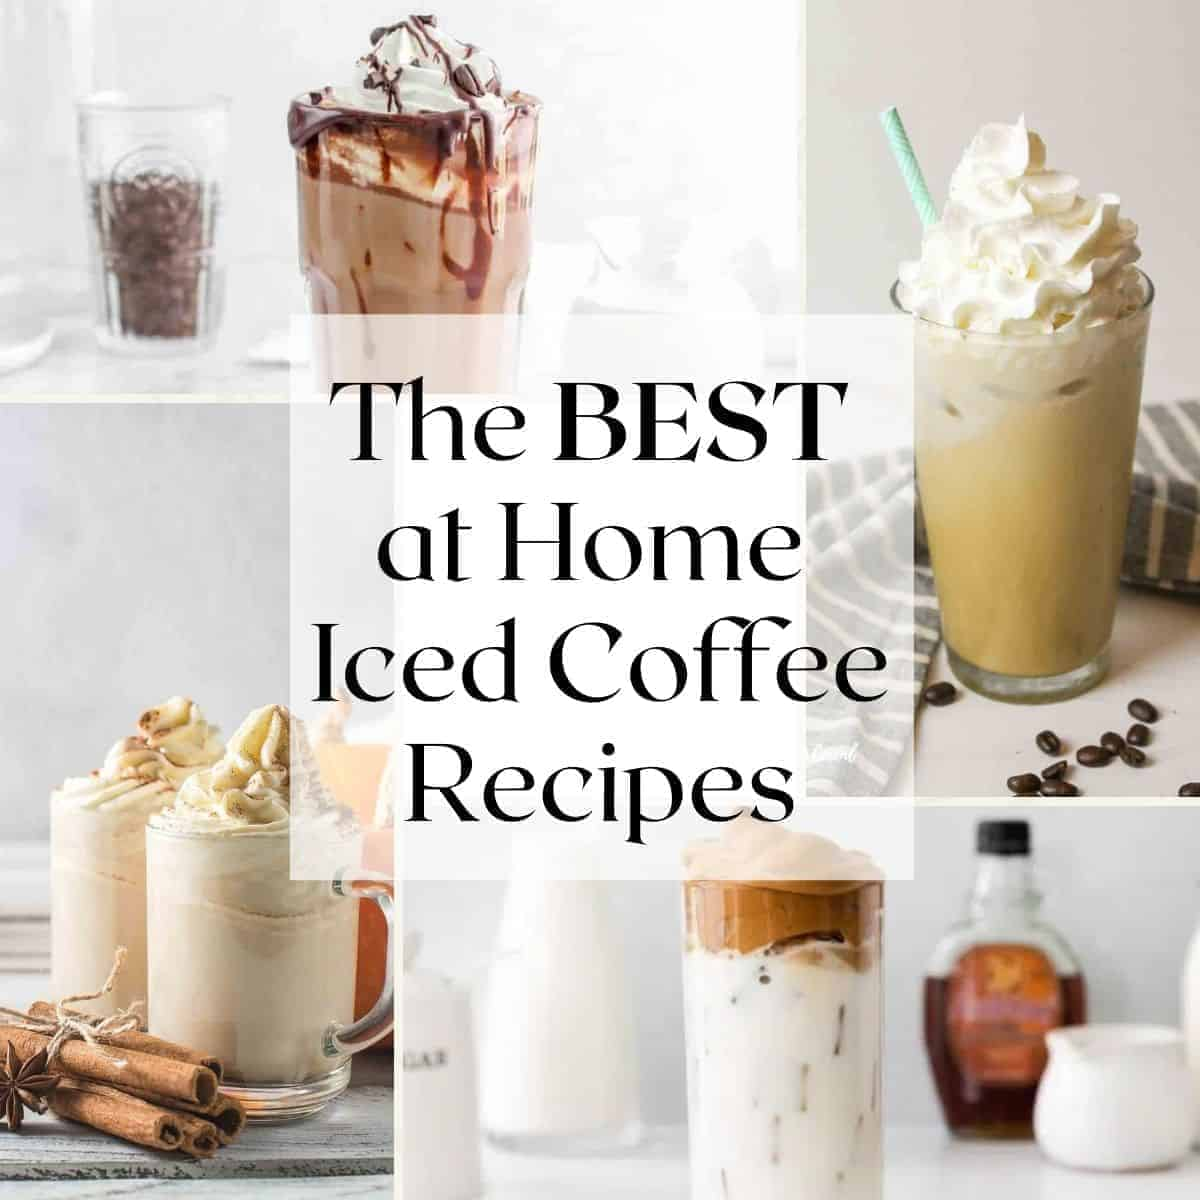 The BEST at Home Iced Coffee Recipes